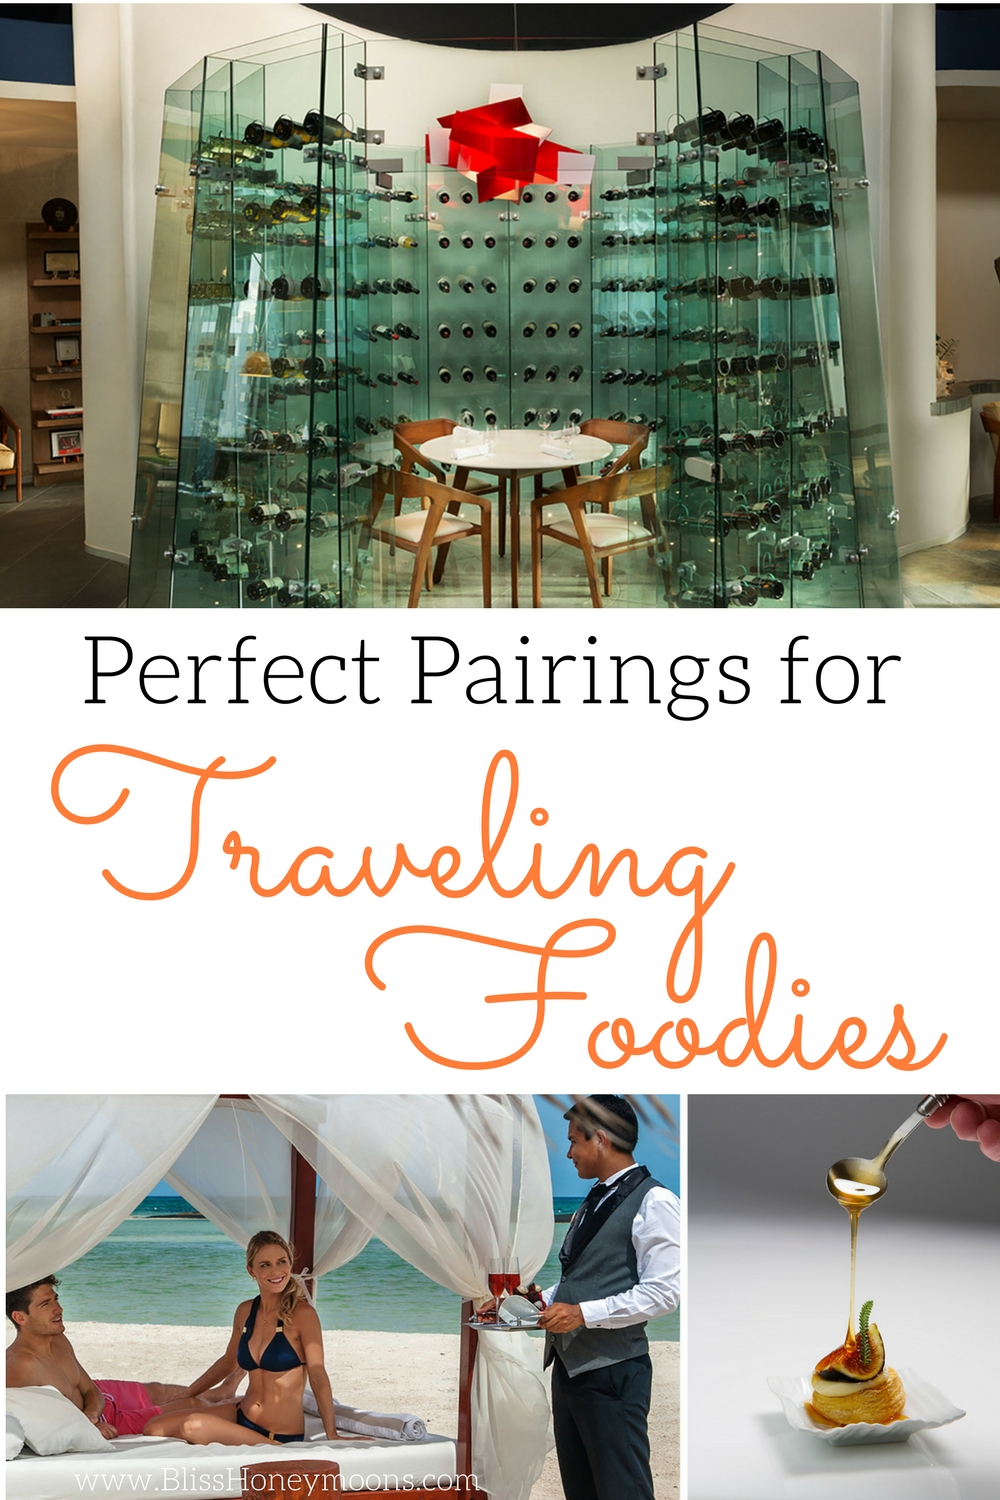 Jackson Family Wines and Karisma Resorts, Karisma Resorts for foodies, best resorts for foodies, top foodie travel destinations, Karisma Resorts food and wine review